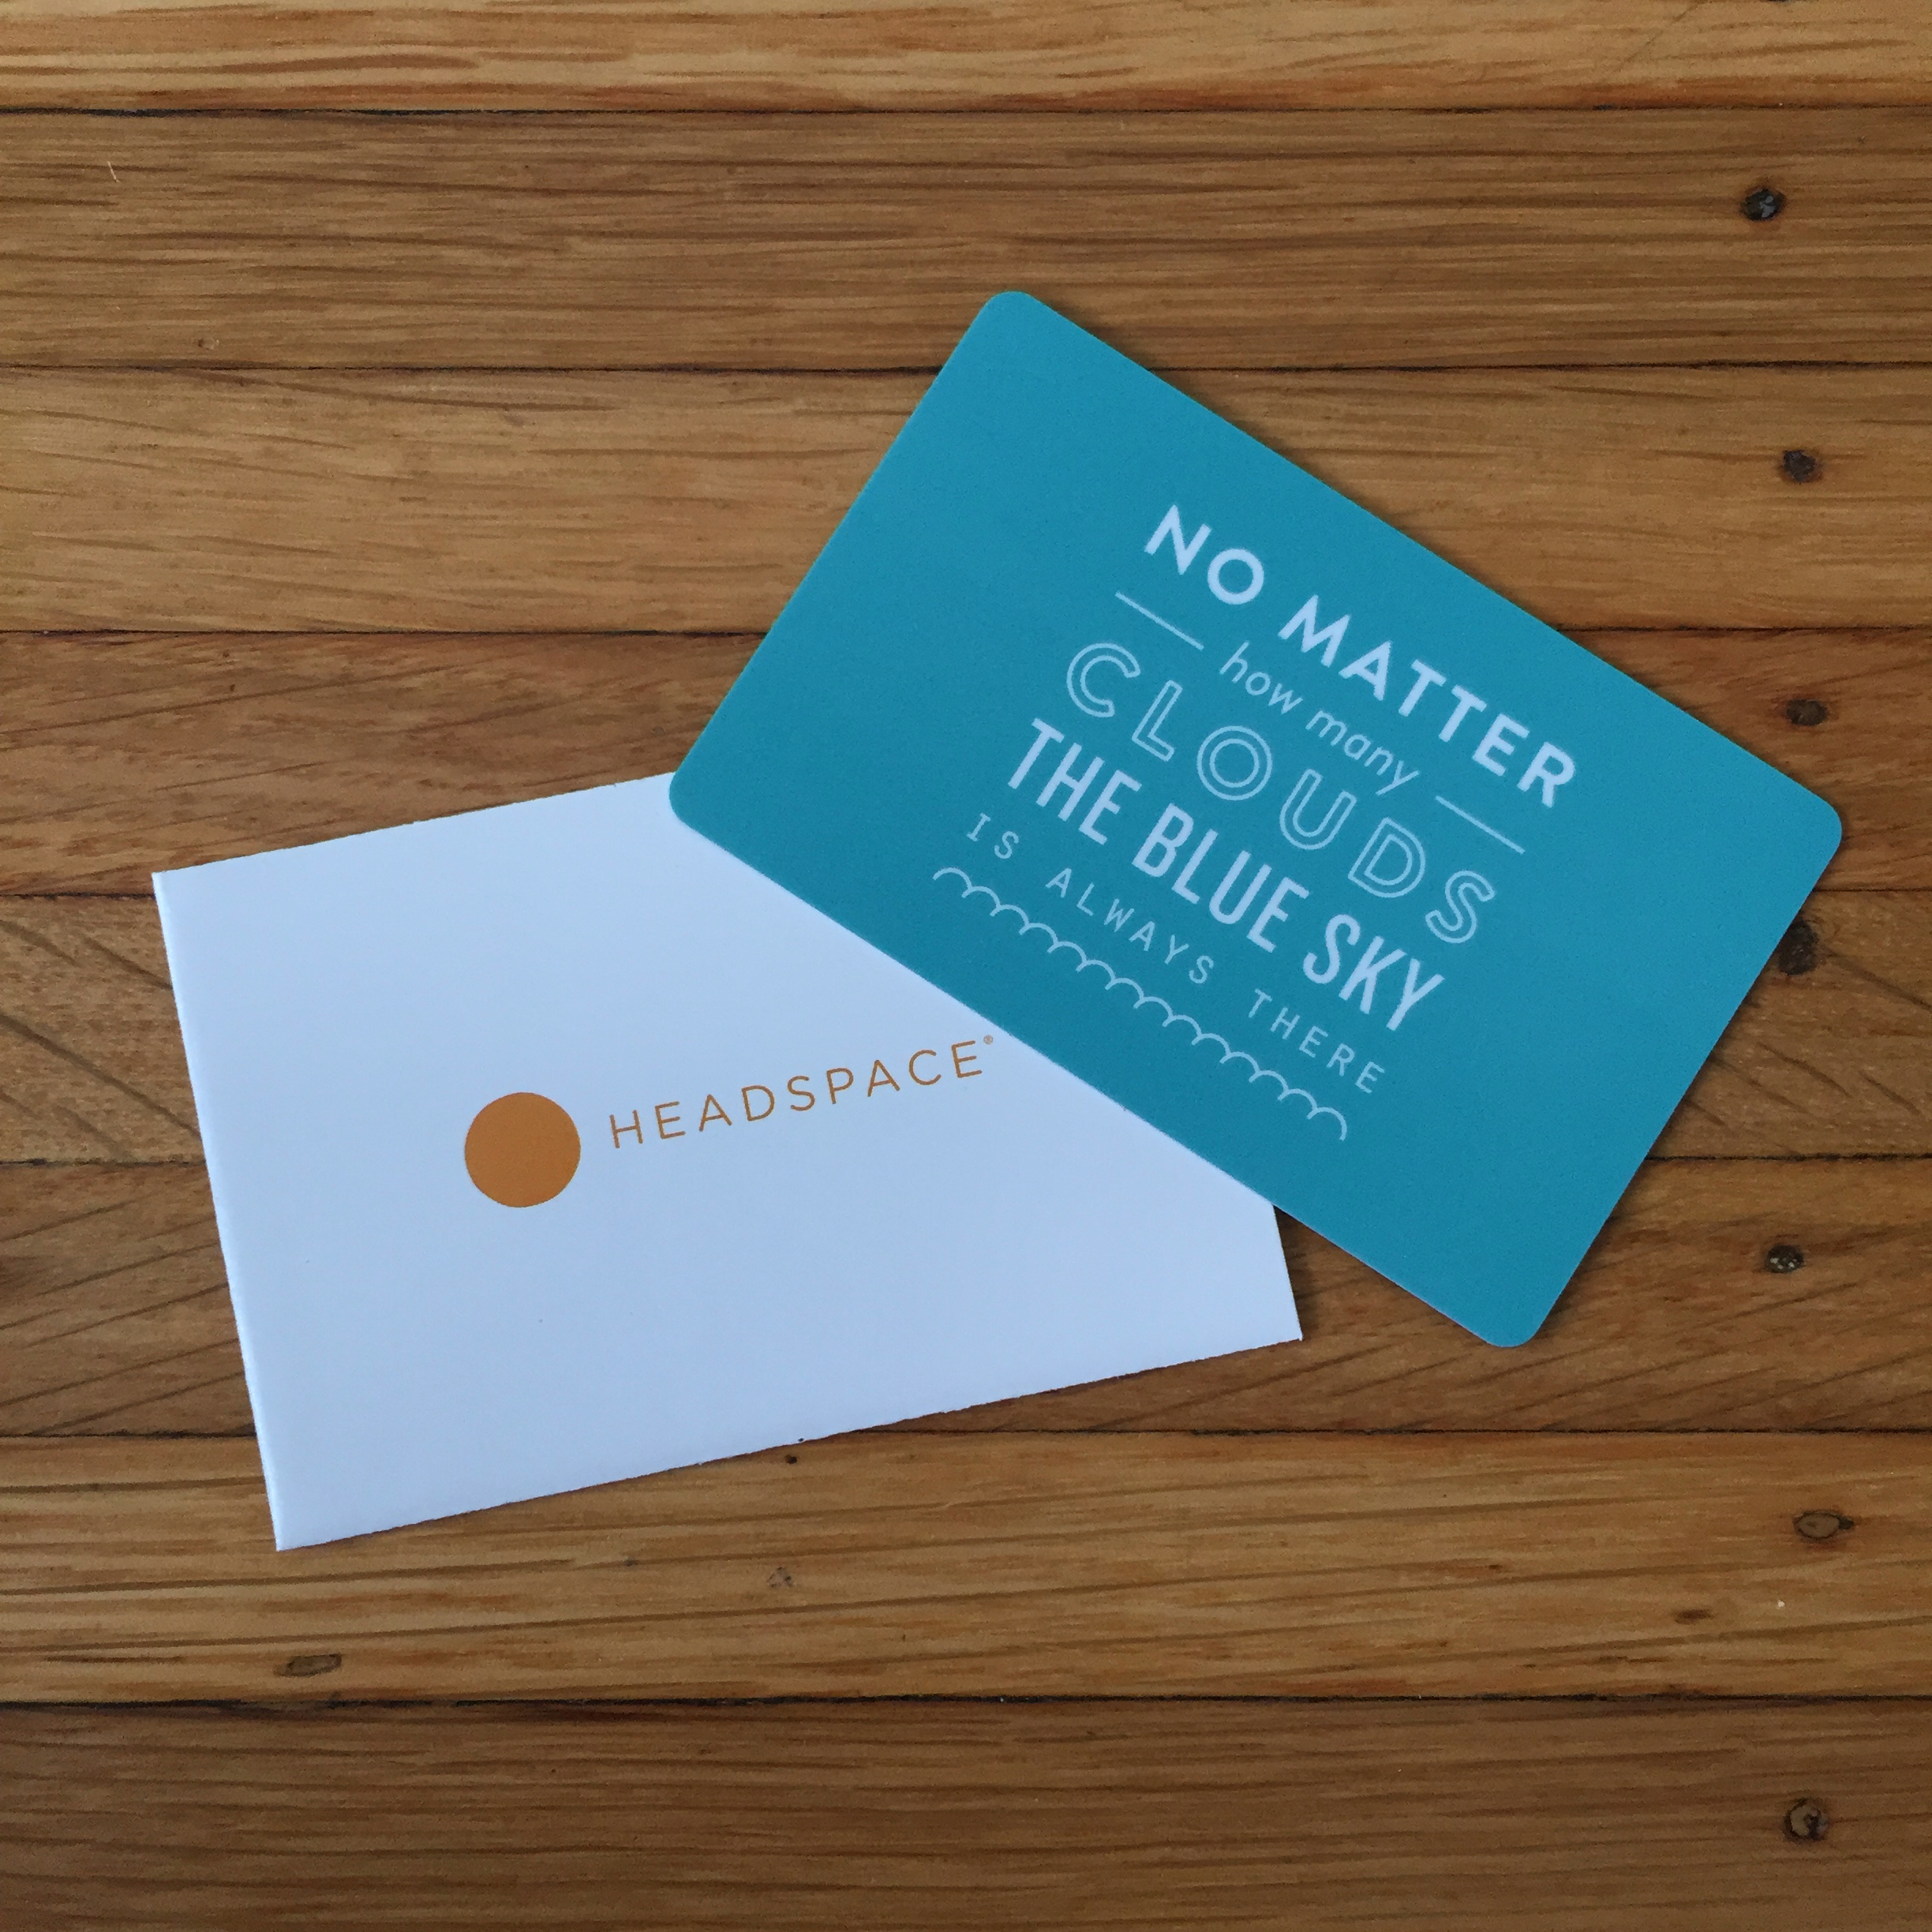 Headspace 3-Month Subscription